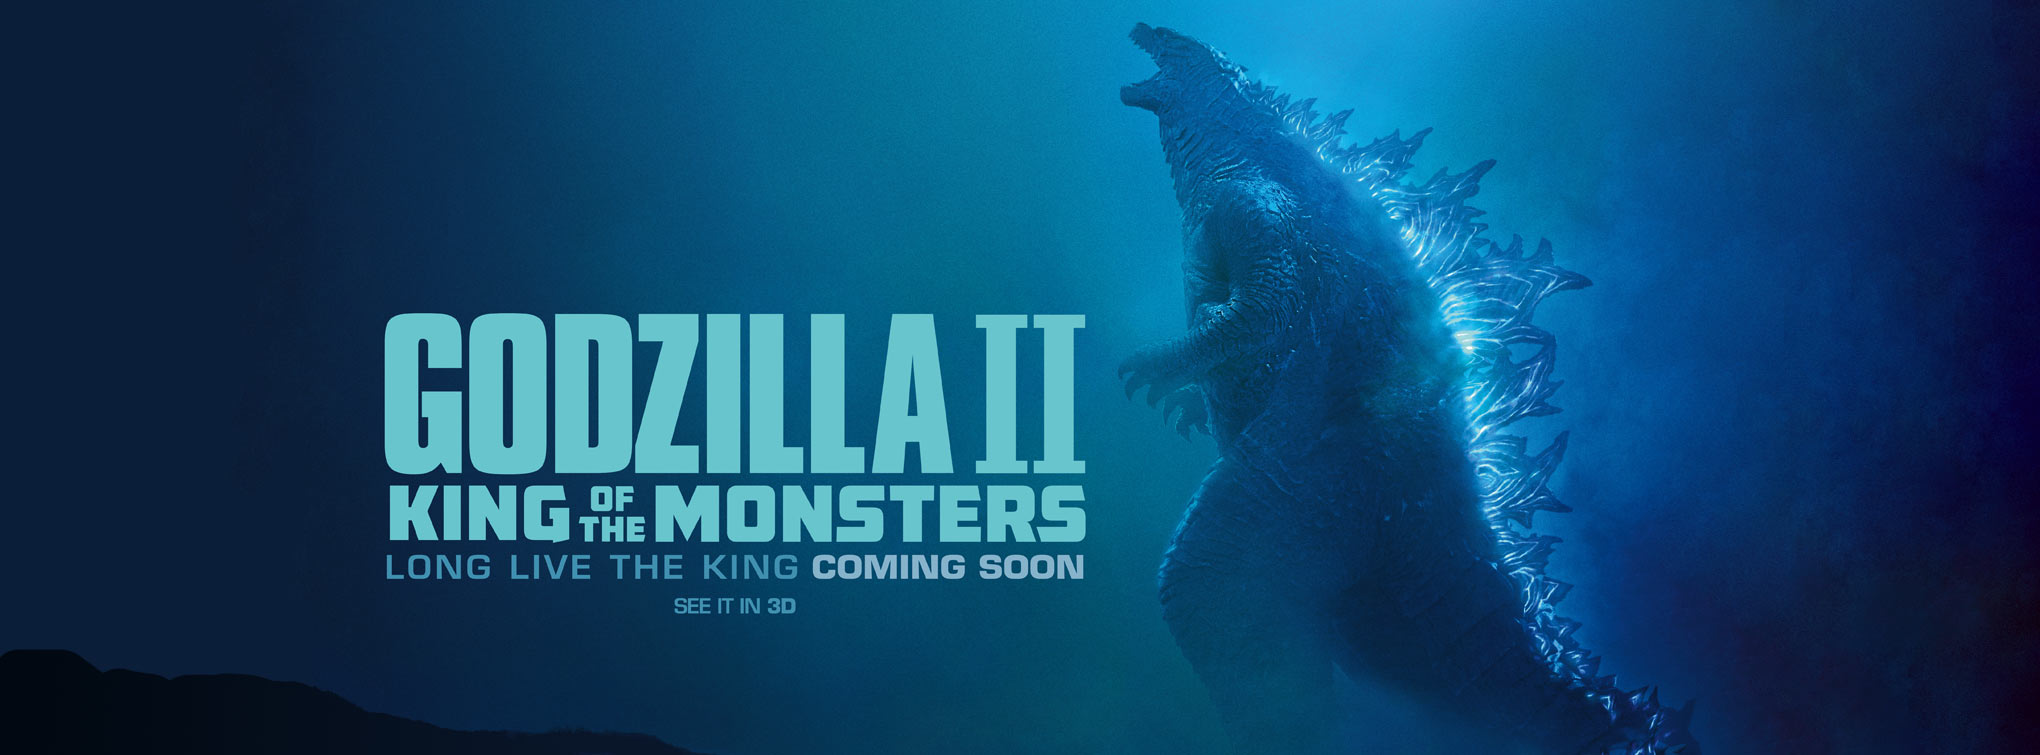 Slider image for Godzilla 2: King of the Monsters